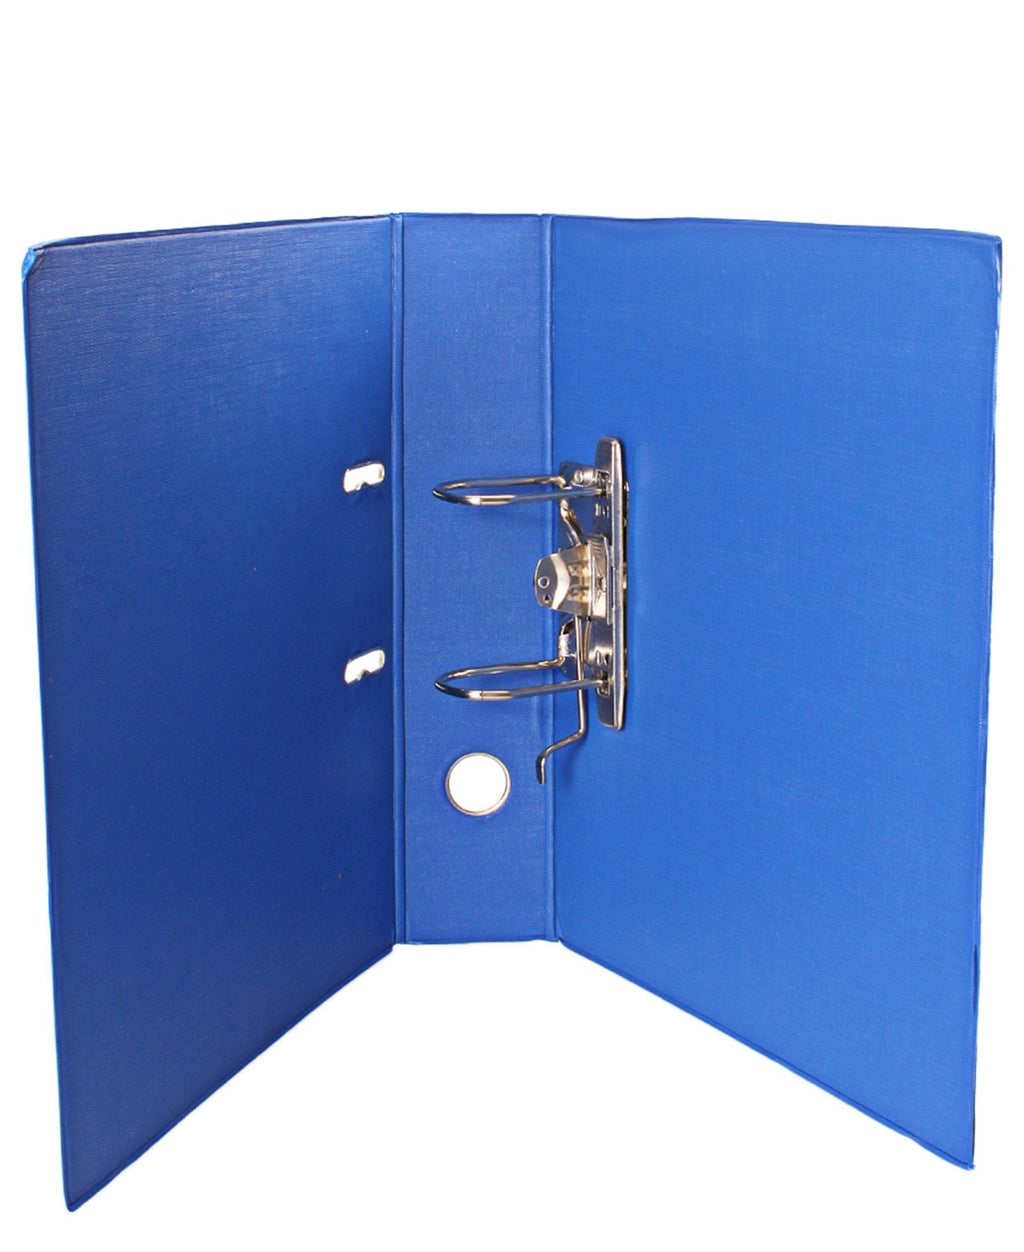 Marlin PVC Lever Arch File - Blue